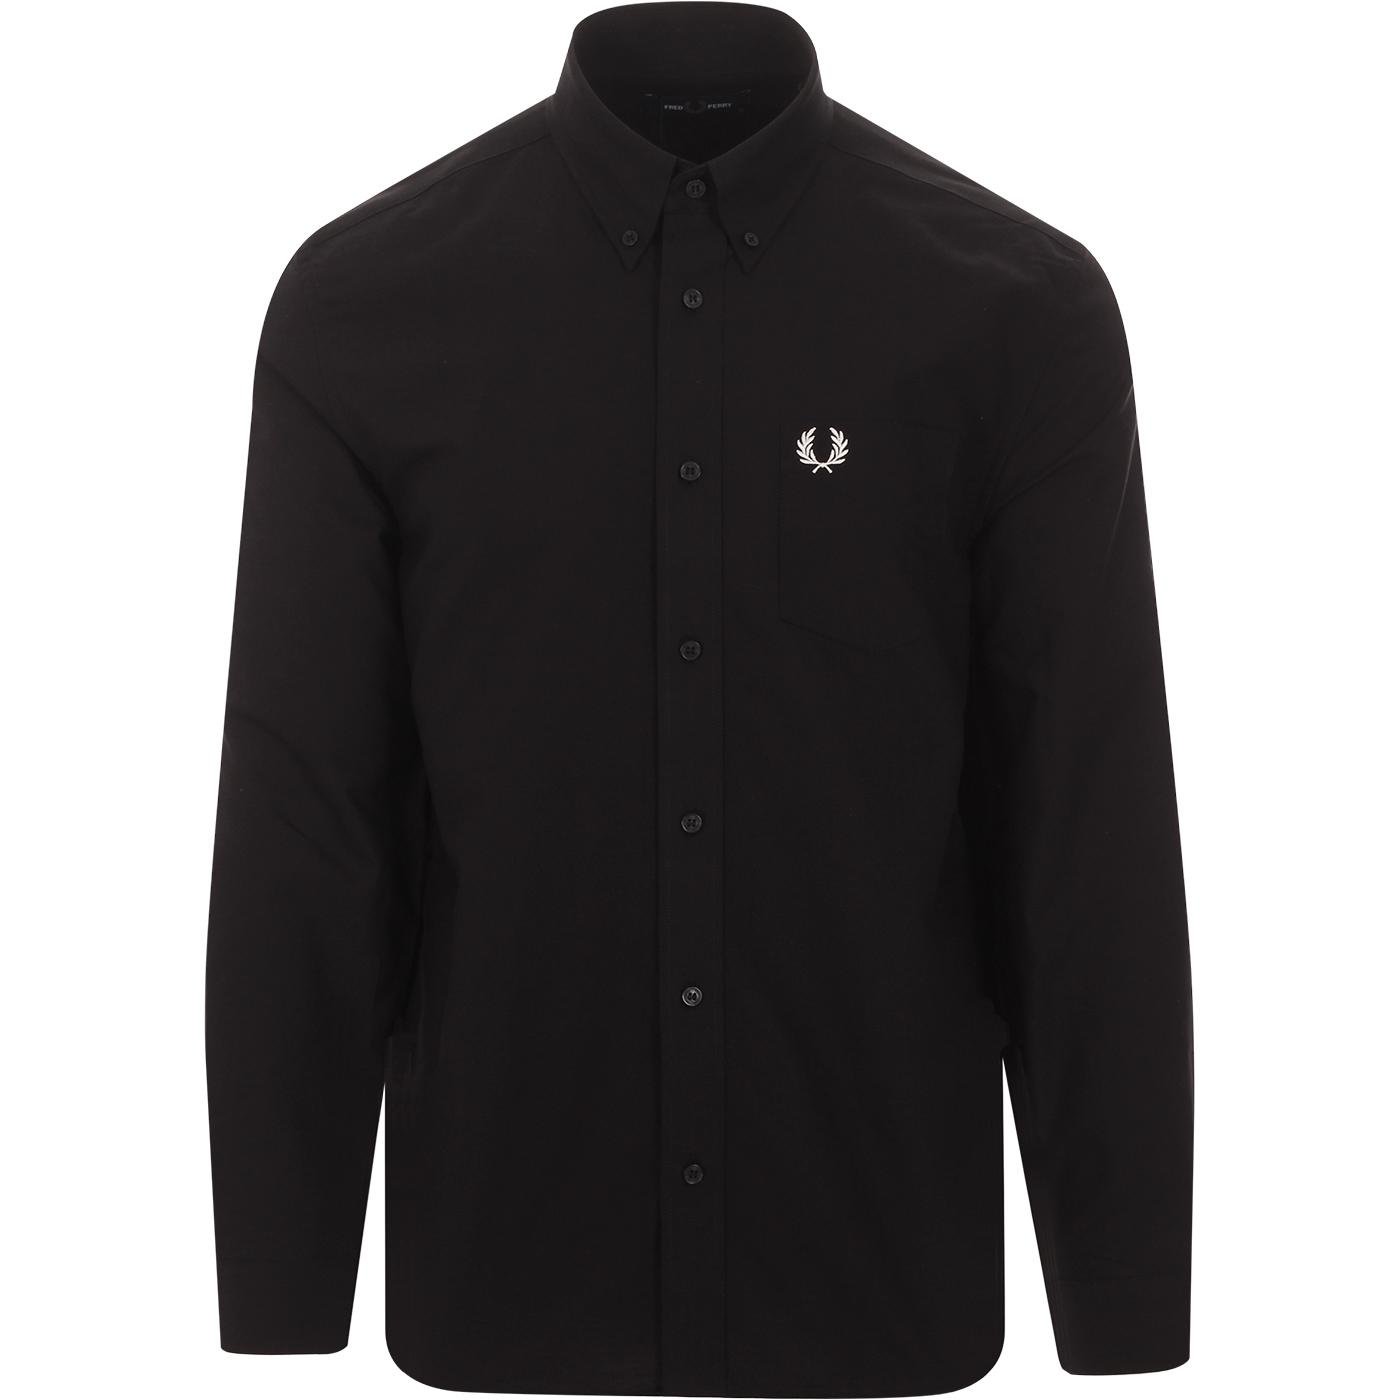 FRED PERRY Mod Button Down Oxford Shirt (Black)